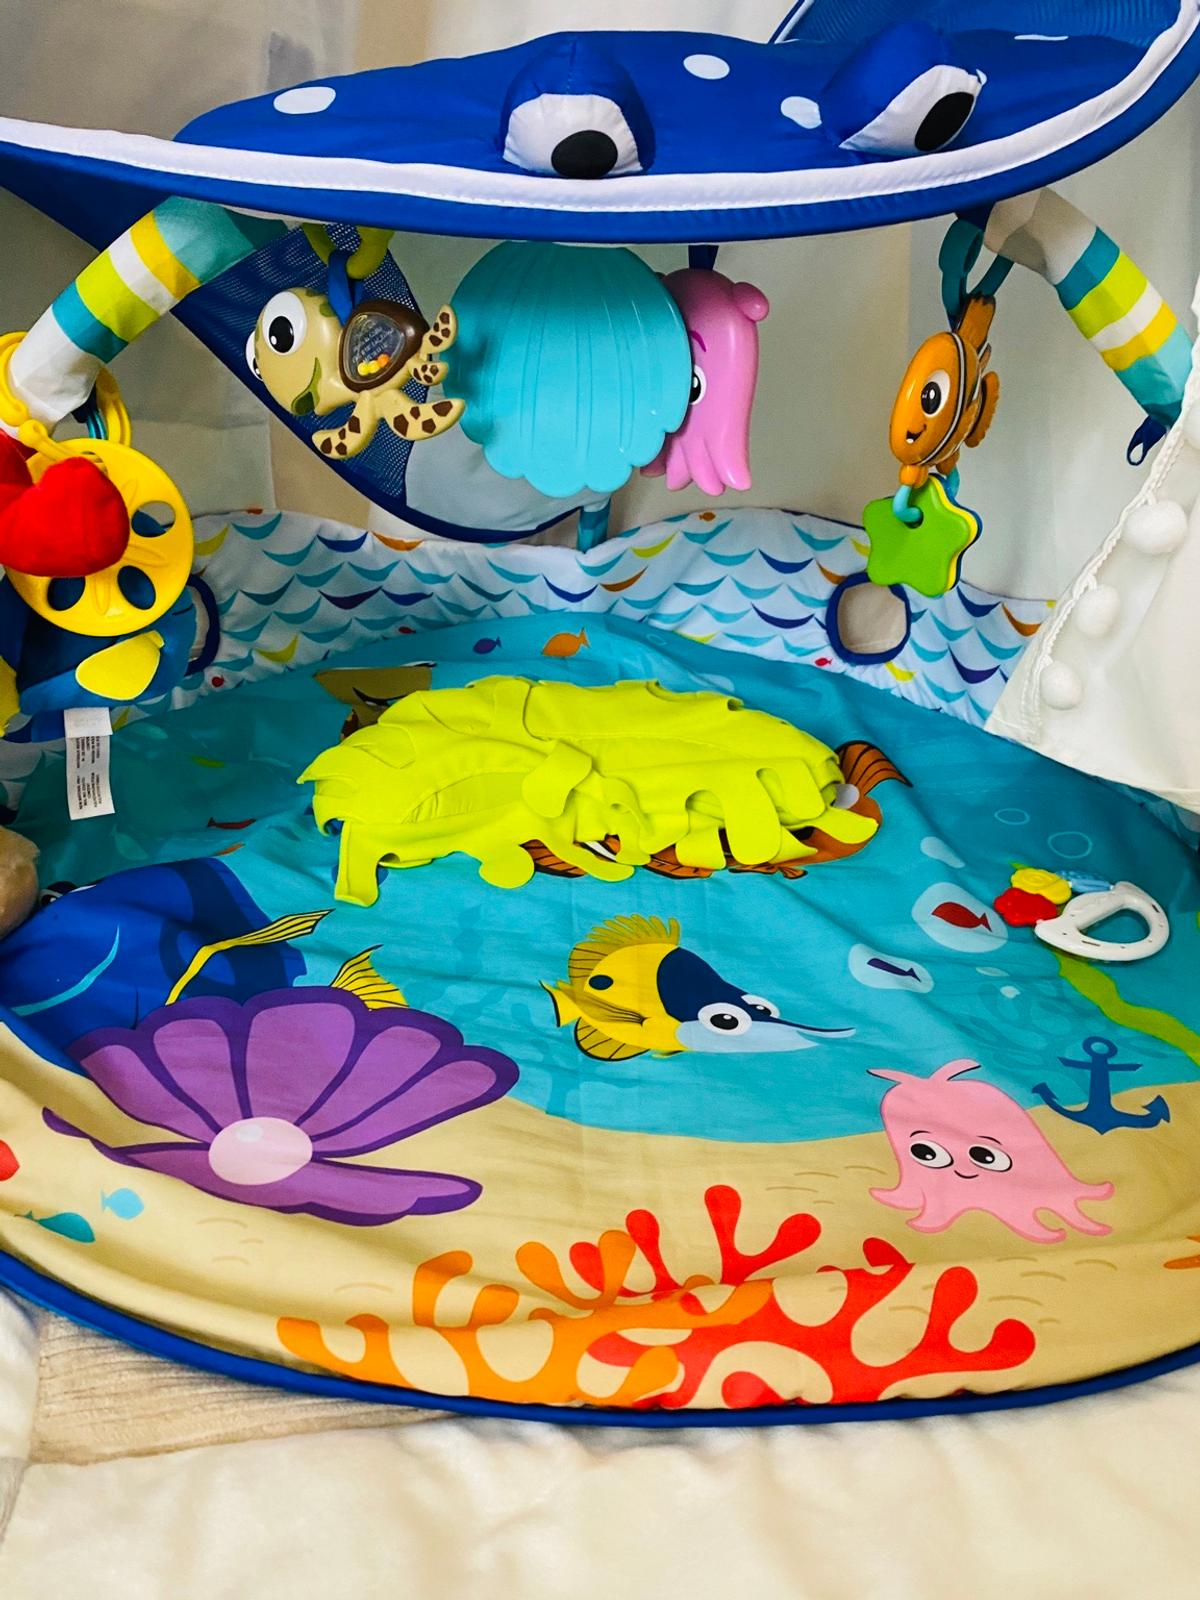 Finding Nemo activity play mat gym. In excellent condition this play mat is ideal to entertain your baby since she's just 3-4 months old. I had my baby staying in this one since she was just 3 months and she spent a lovely time inside entertained by music and lights from a magic underworld. It is a great way to make your baby enjoy playing by himself. It is only for collection because I don't have the initial package. It is complete and no damage at all. Smoke and pet free house.